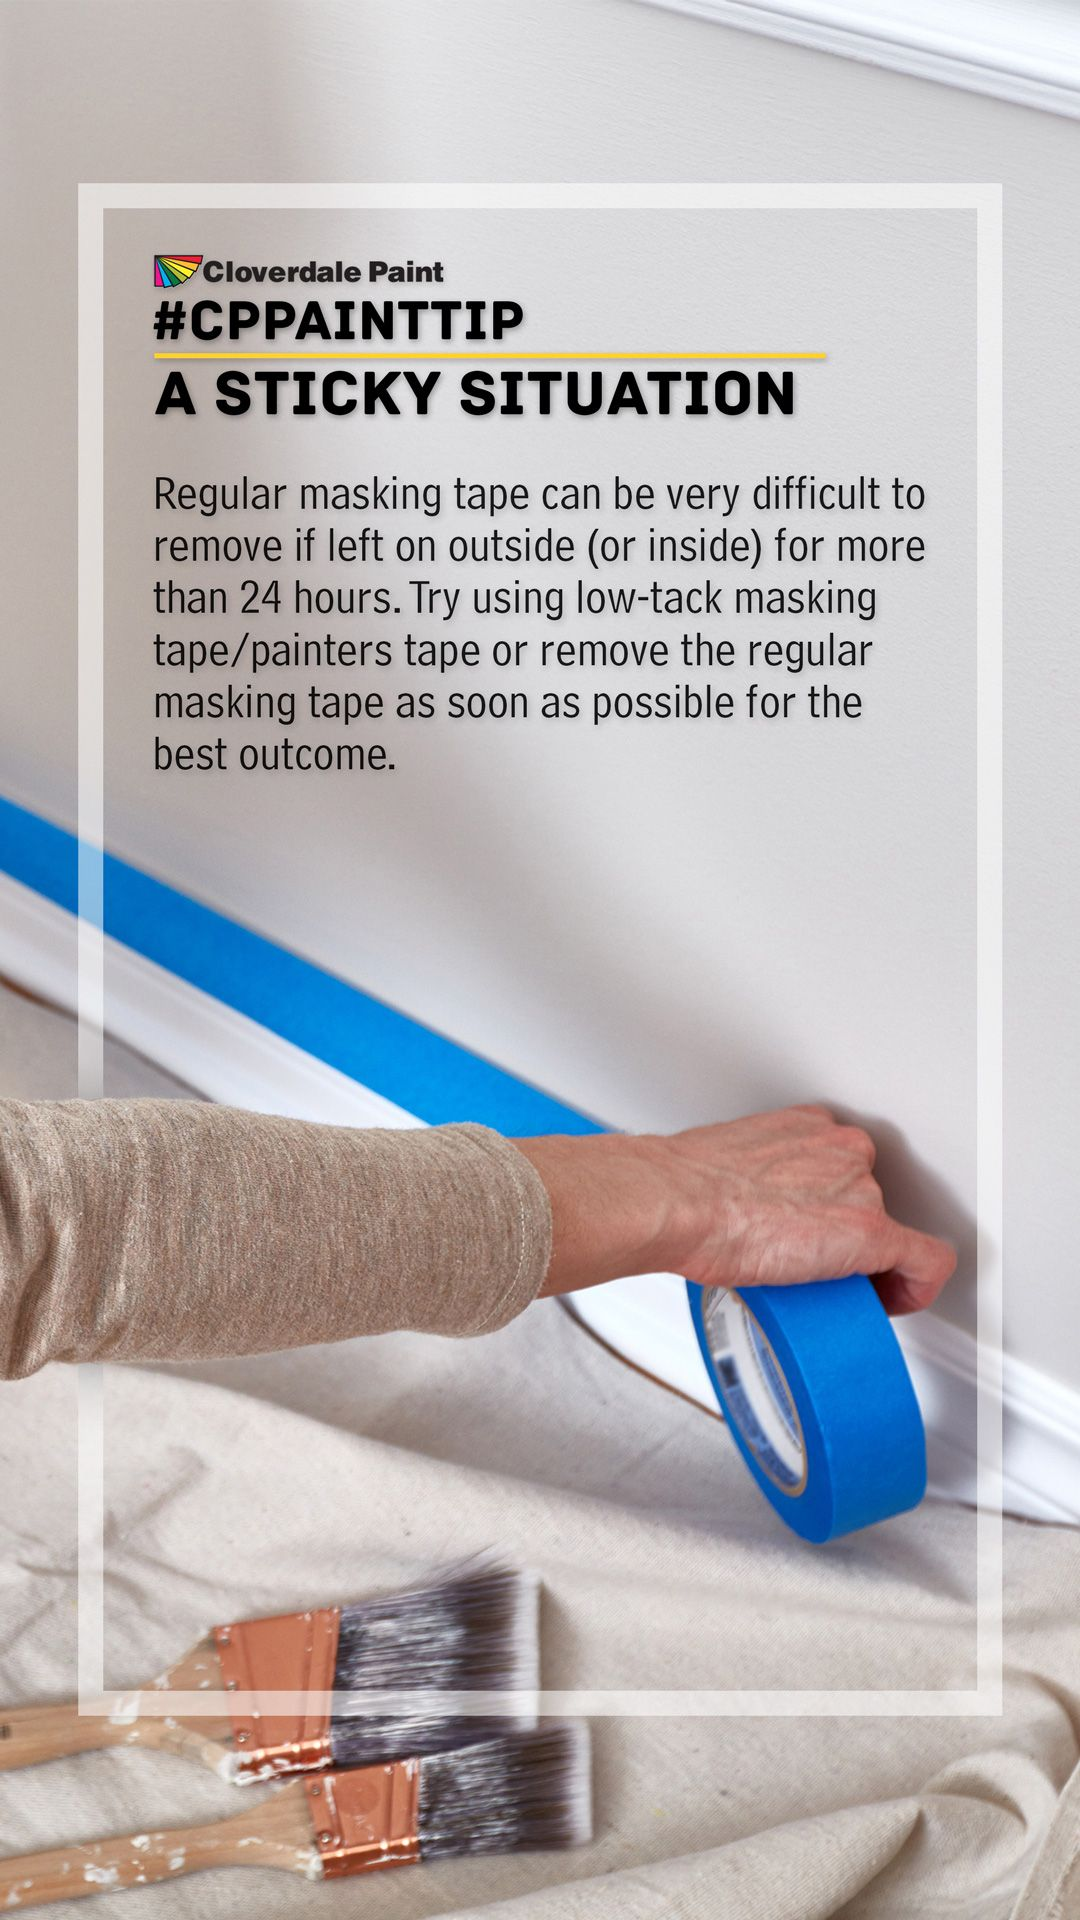 Cppainttip A Sticky Situation Painters Tape Masking Tape How To Remove